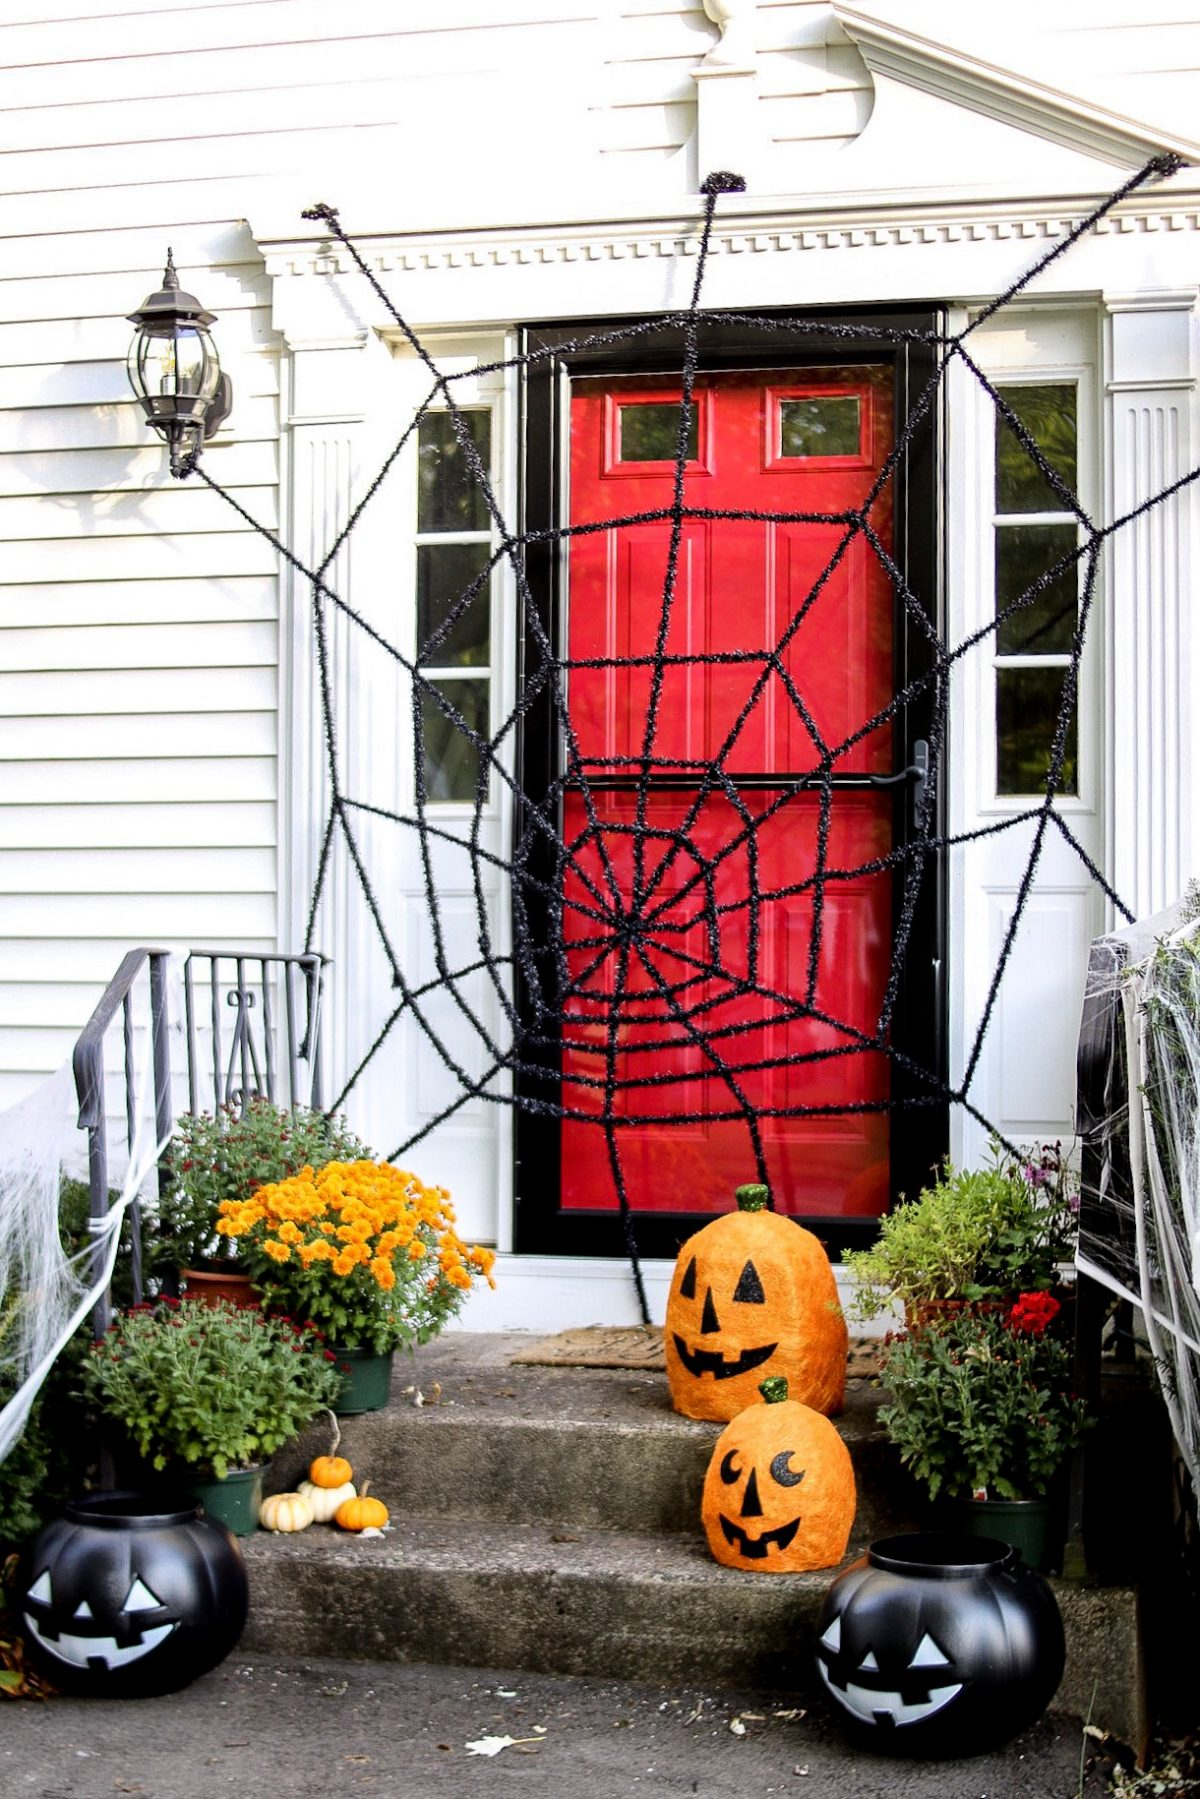 Halloween Front Porch - Fake Spider web over front door - light up pumpkins and mums - White Colonial Home with Red Door